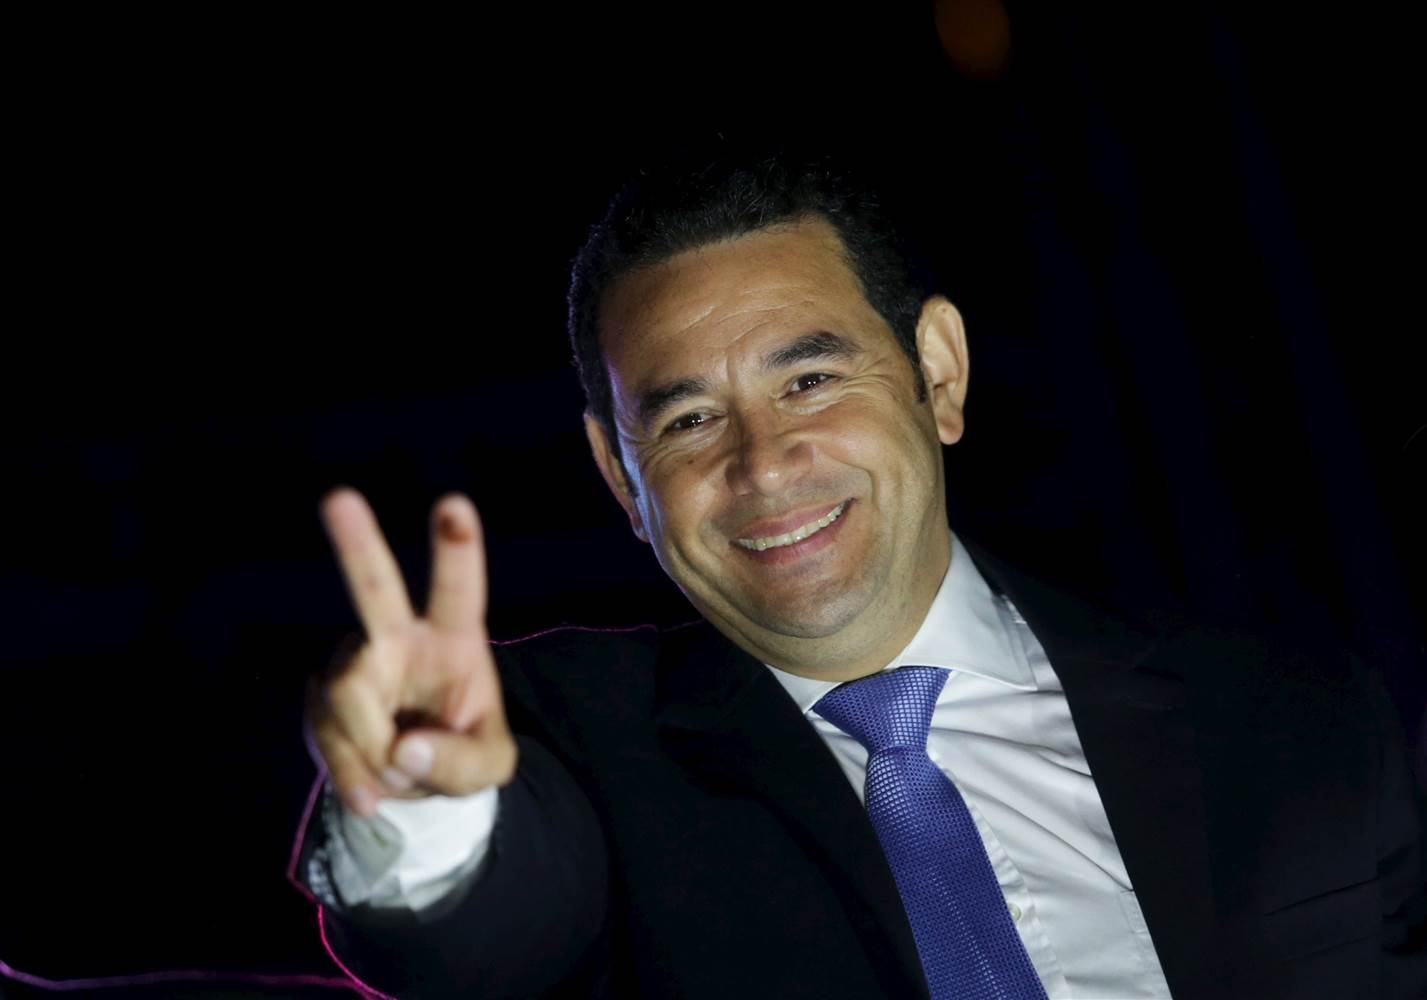 Jimmy Morales gestures to supporters after winning Guatemala's presidential election early Monday. JORGE DAN LOPEZ / Reuters